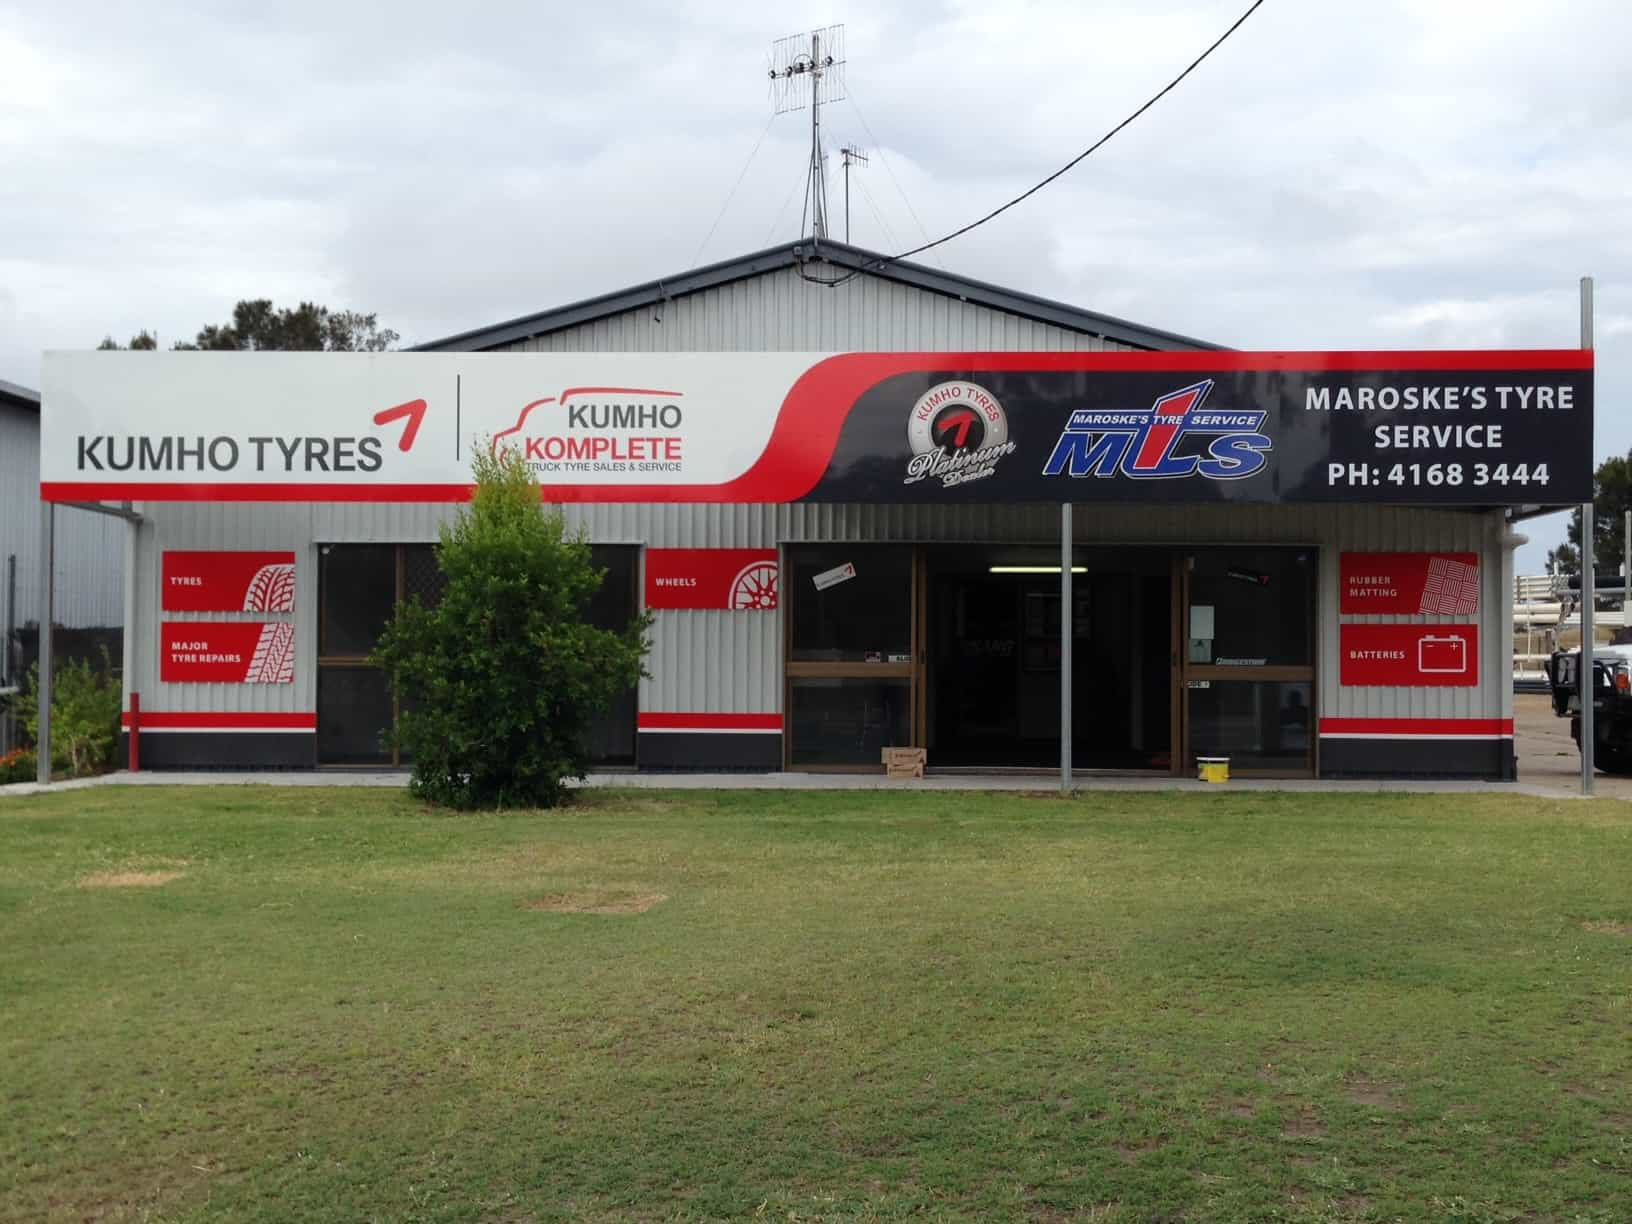 Maroske's Tyre Services was established five years ago to service the South Burnett region and is the newest Kumho Platinum Dealer.